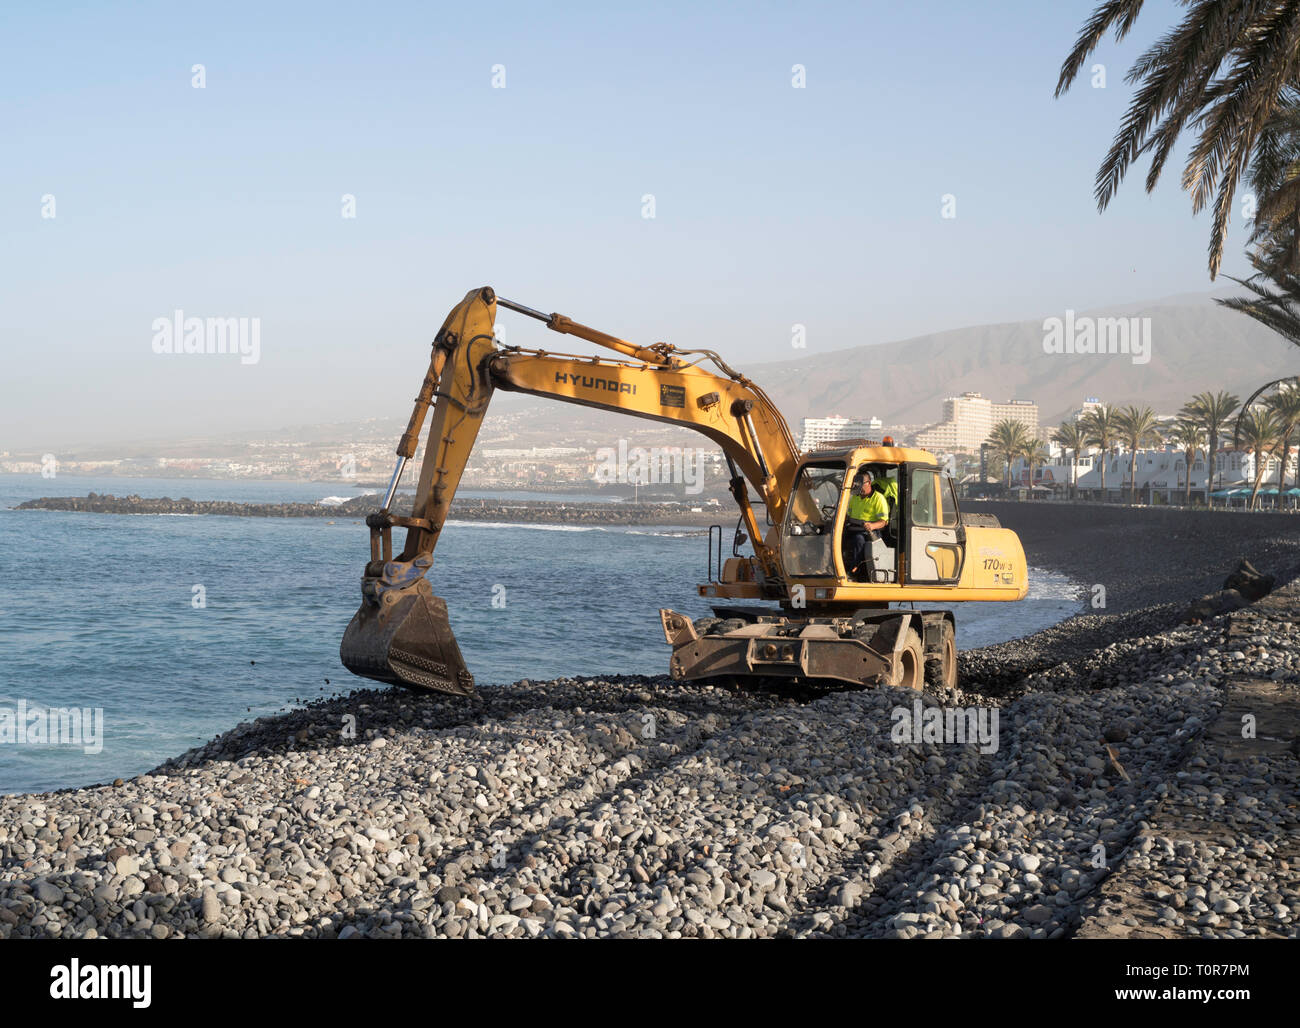 Hyundai R 170 W wheeled excavator maintaining sea defences in Costa Adeje, Tenerife, Canary Islands. - Stock Image